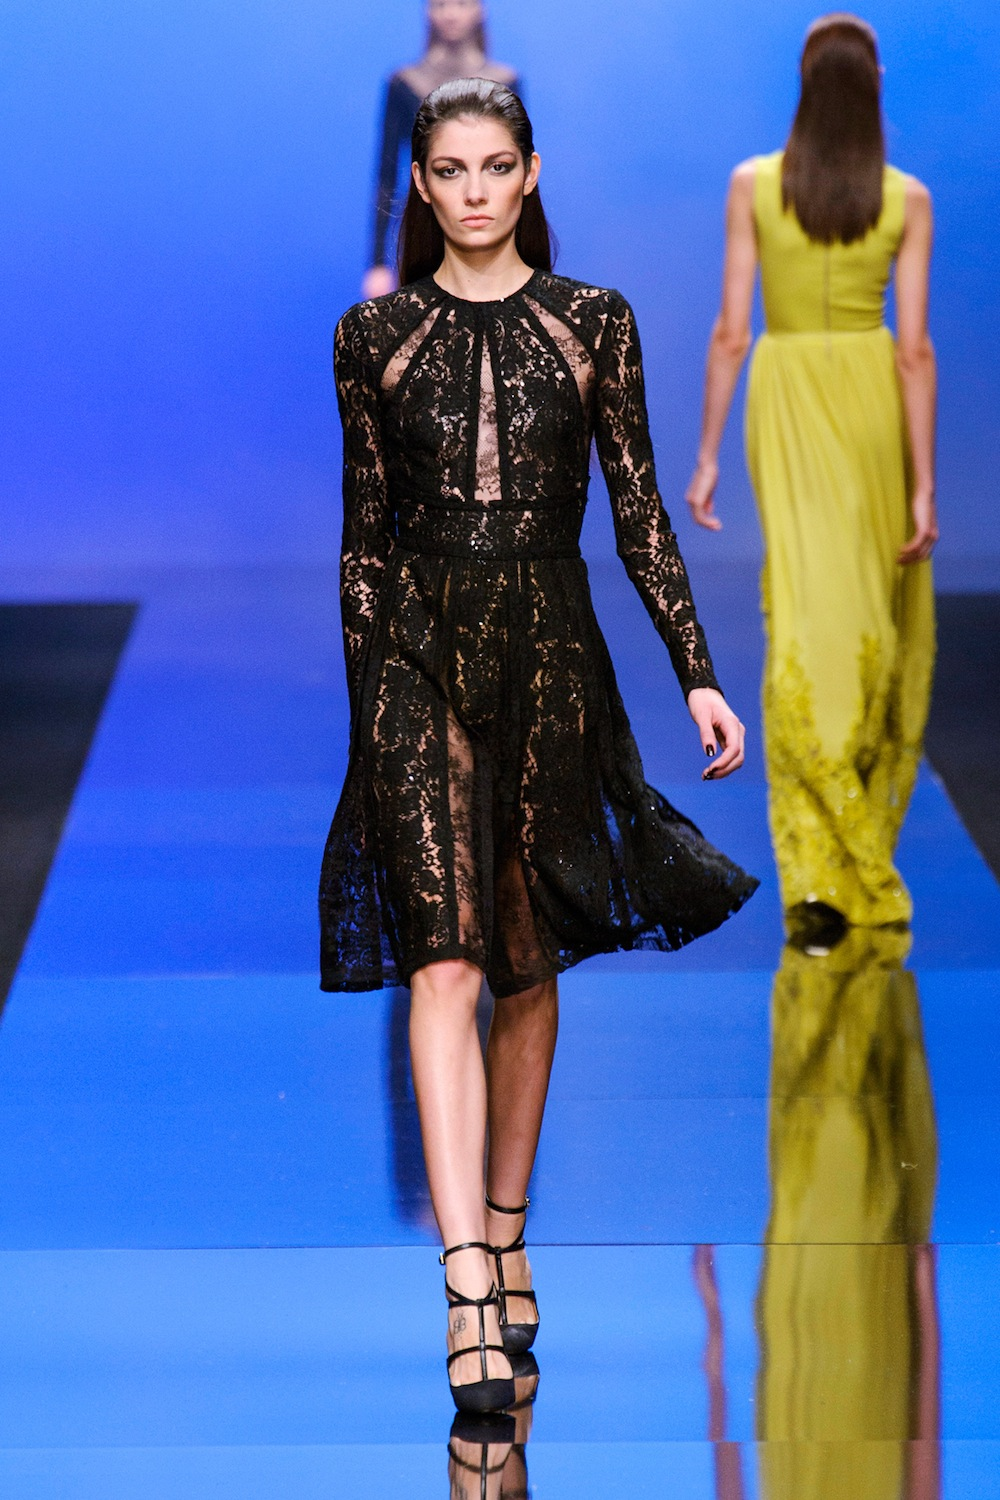 Lace LBD at Elie Saab